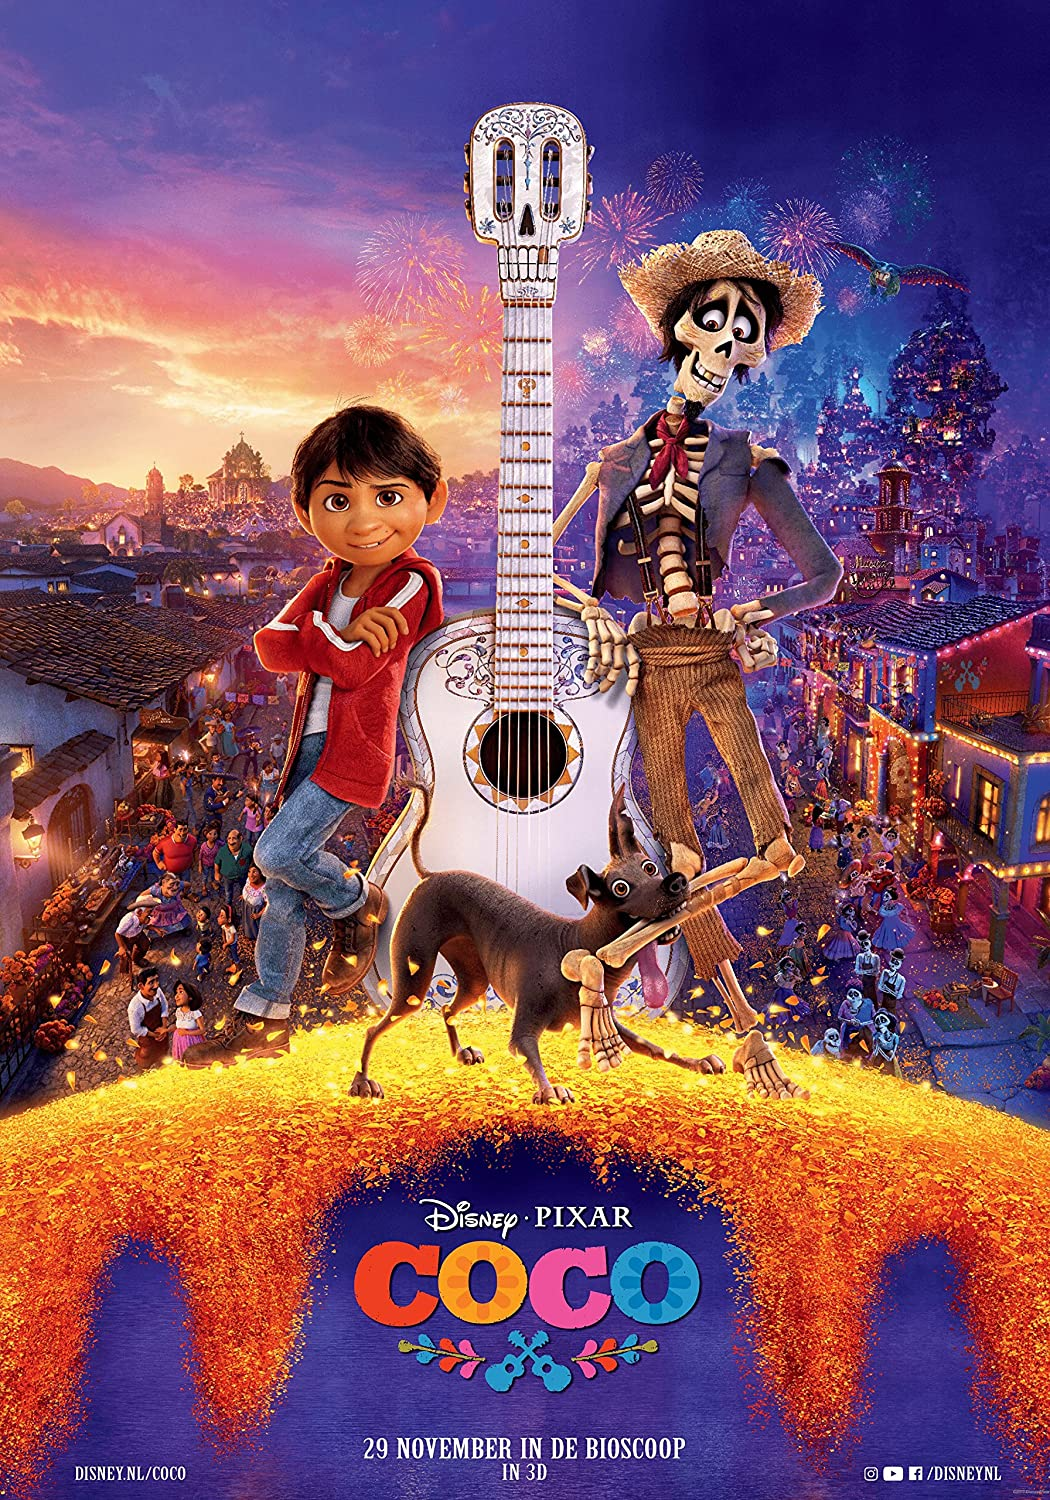 Amazon.com : Coco Movie Poster Limited Print Photo Stars: Anthony Gonzalez,  Gael García Bernal, Benjamin Bratt Size 11x17 #1 : Everything Else